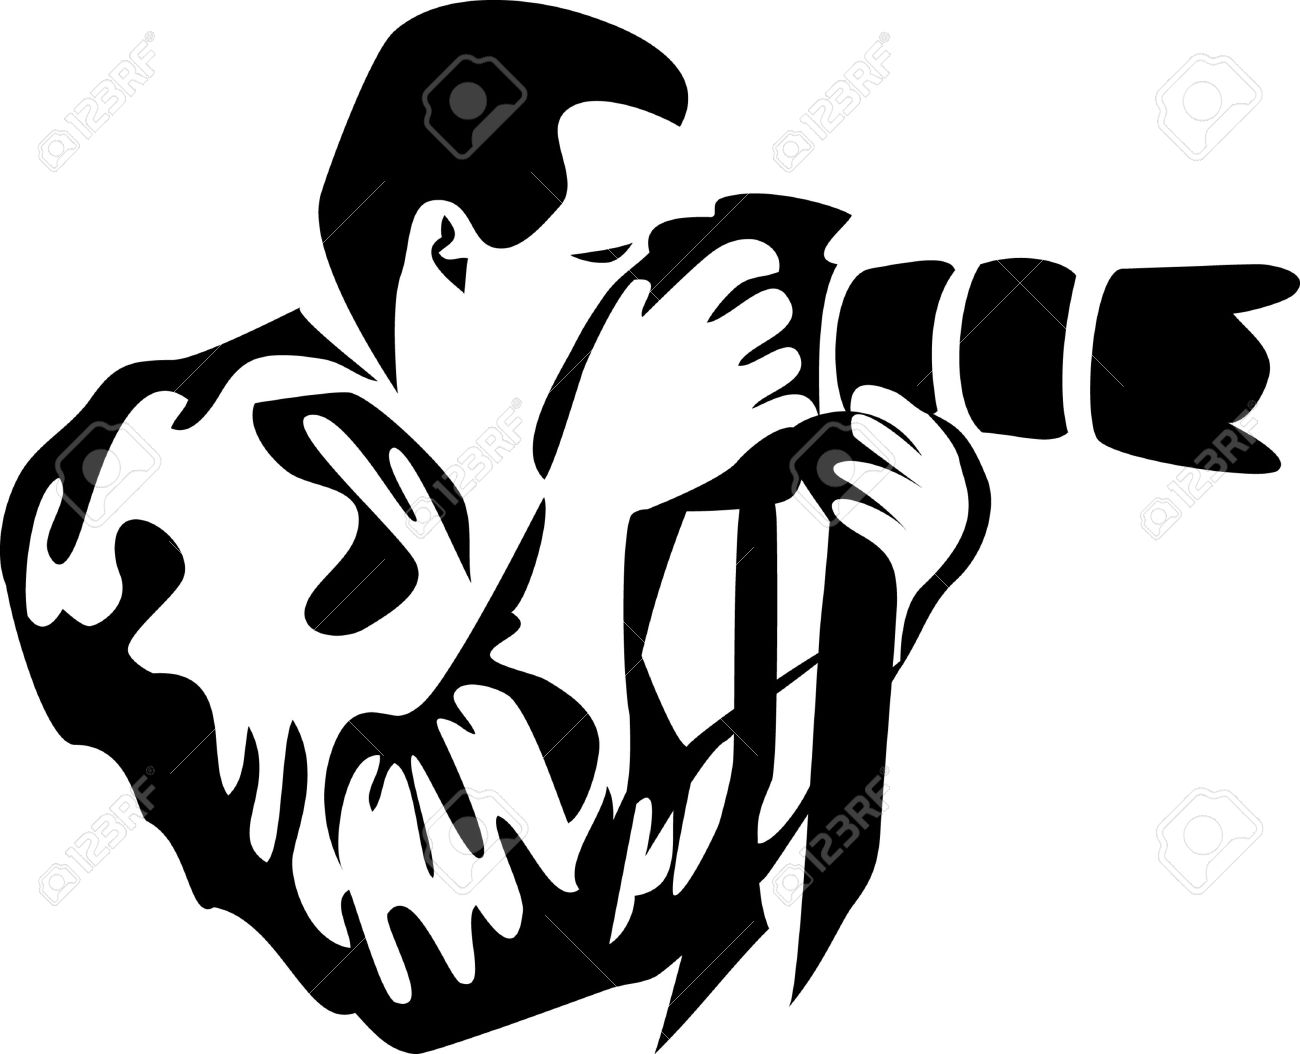 Black and white free. Camera clipart photo session